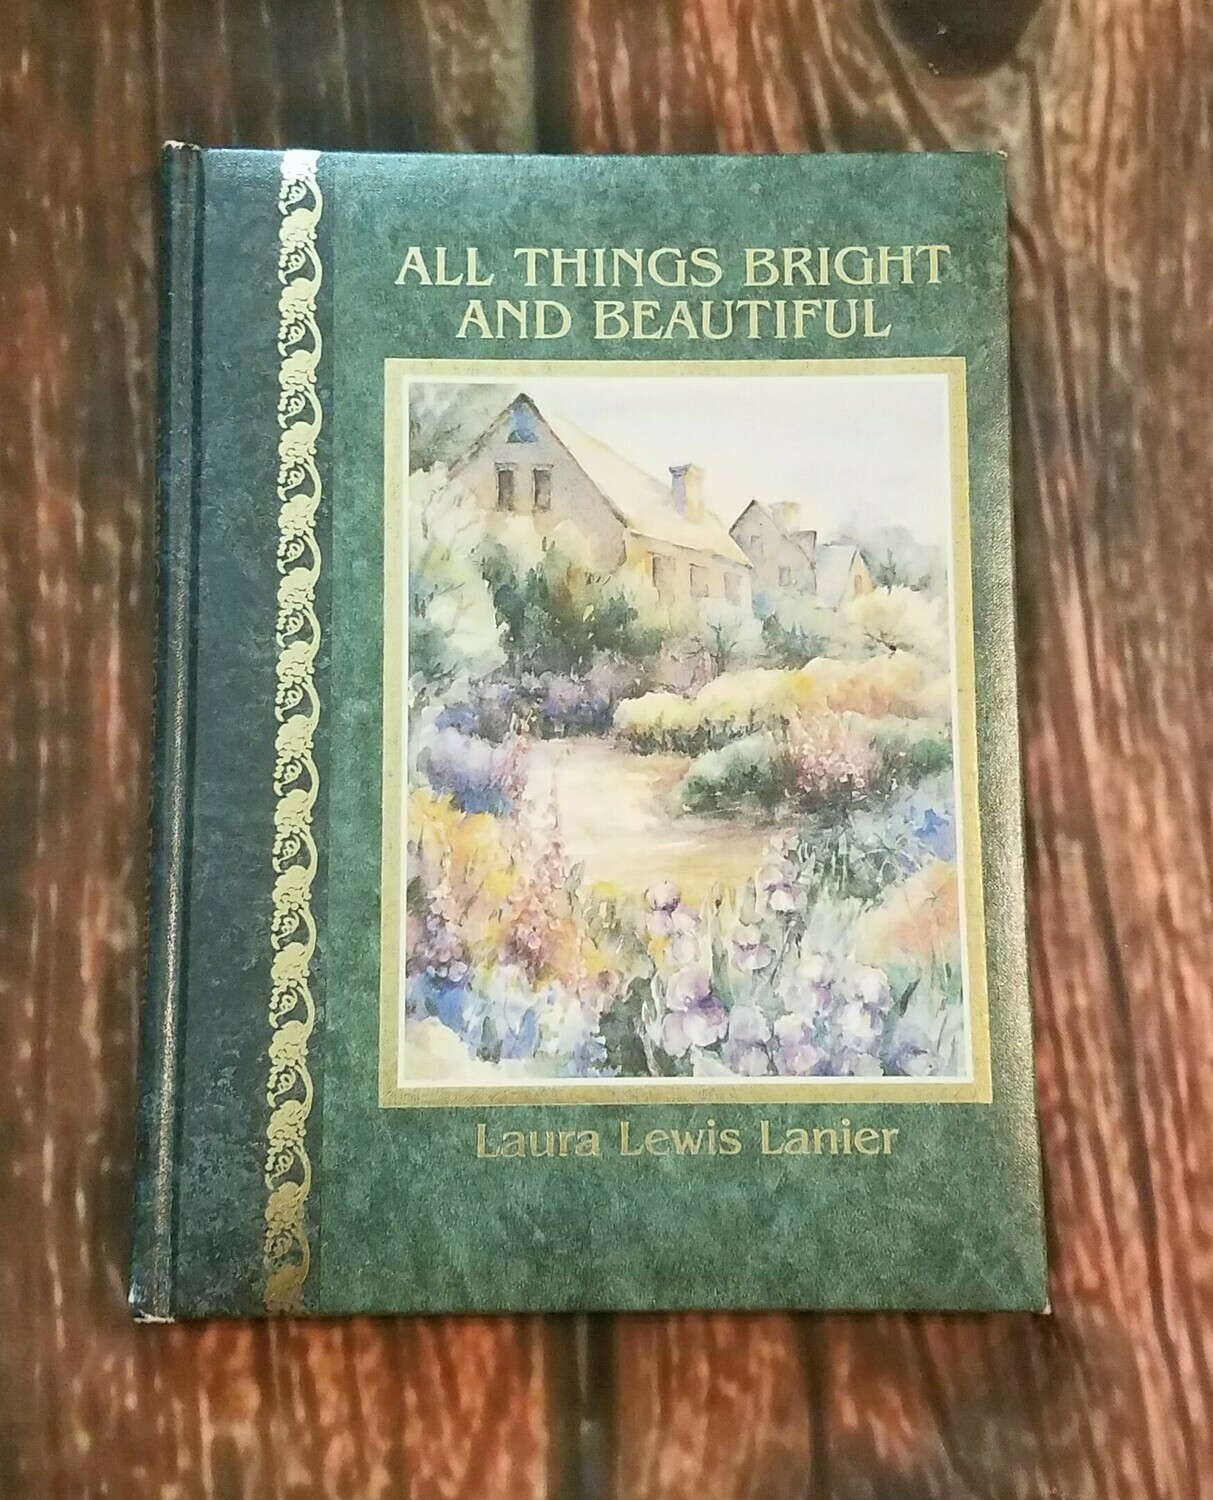 All Things Bright and Beautiful by Laura Lewis Lanier